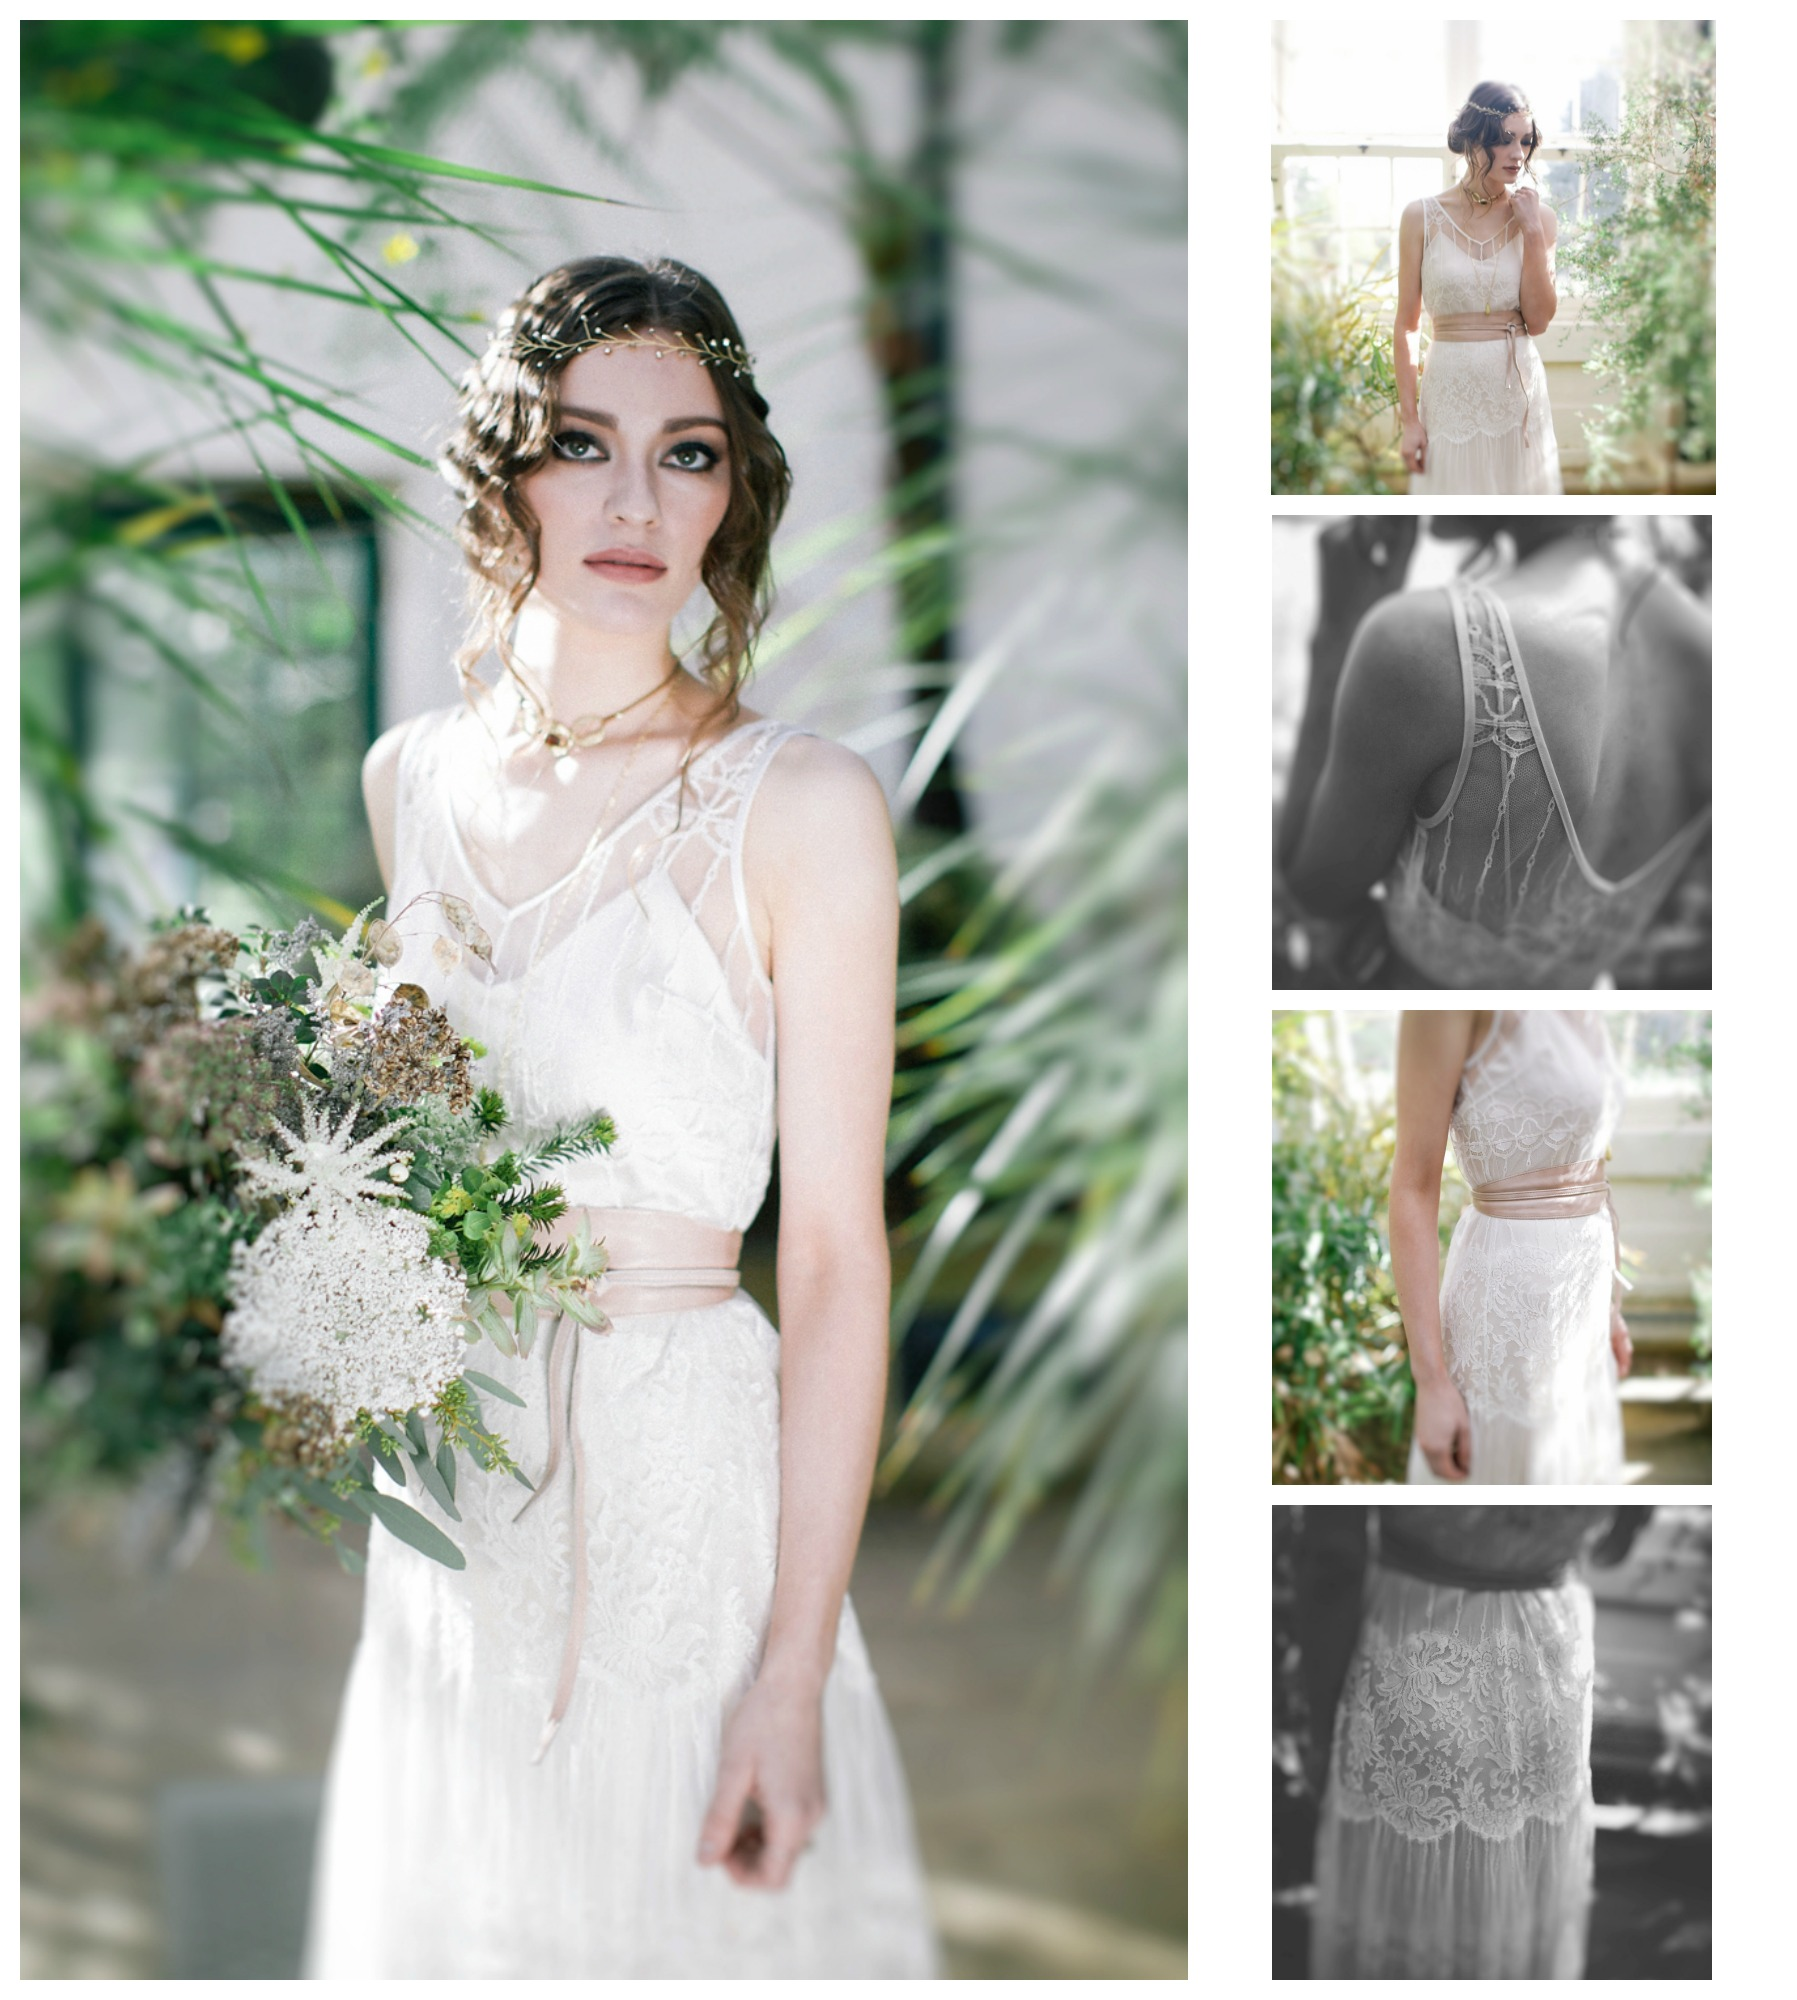 Designer wedding dress sample sale leicestershire for Wedding dresses london sale